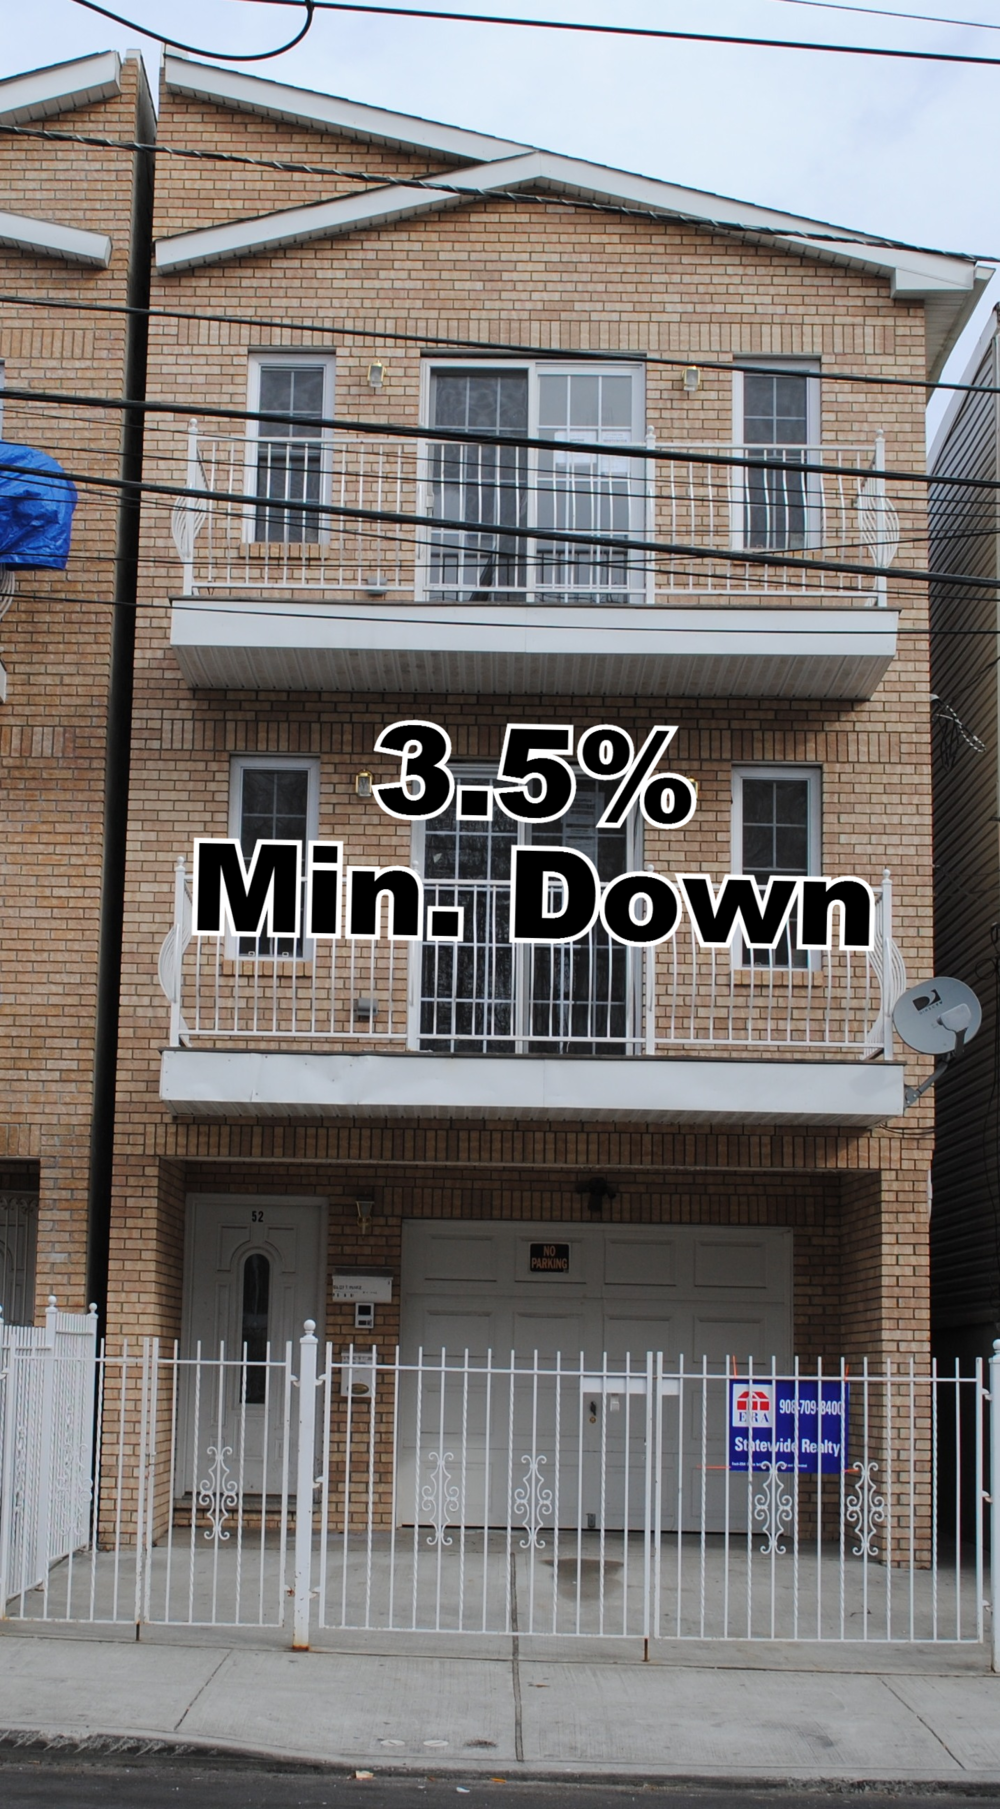 3.5% Minimum Downpayment